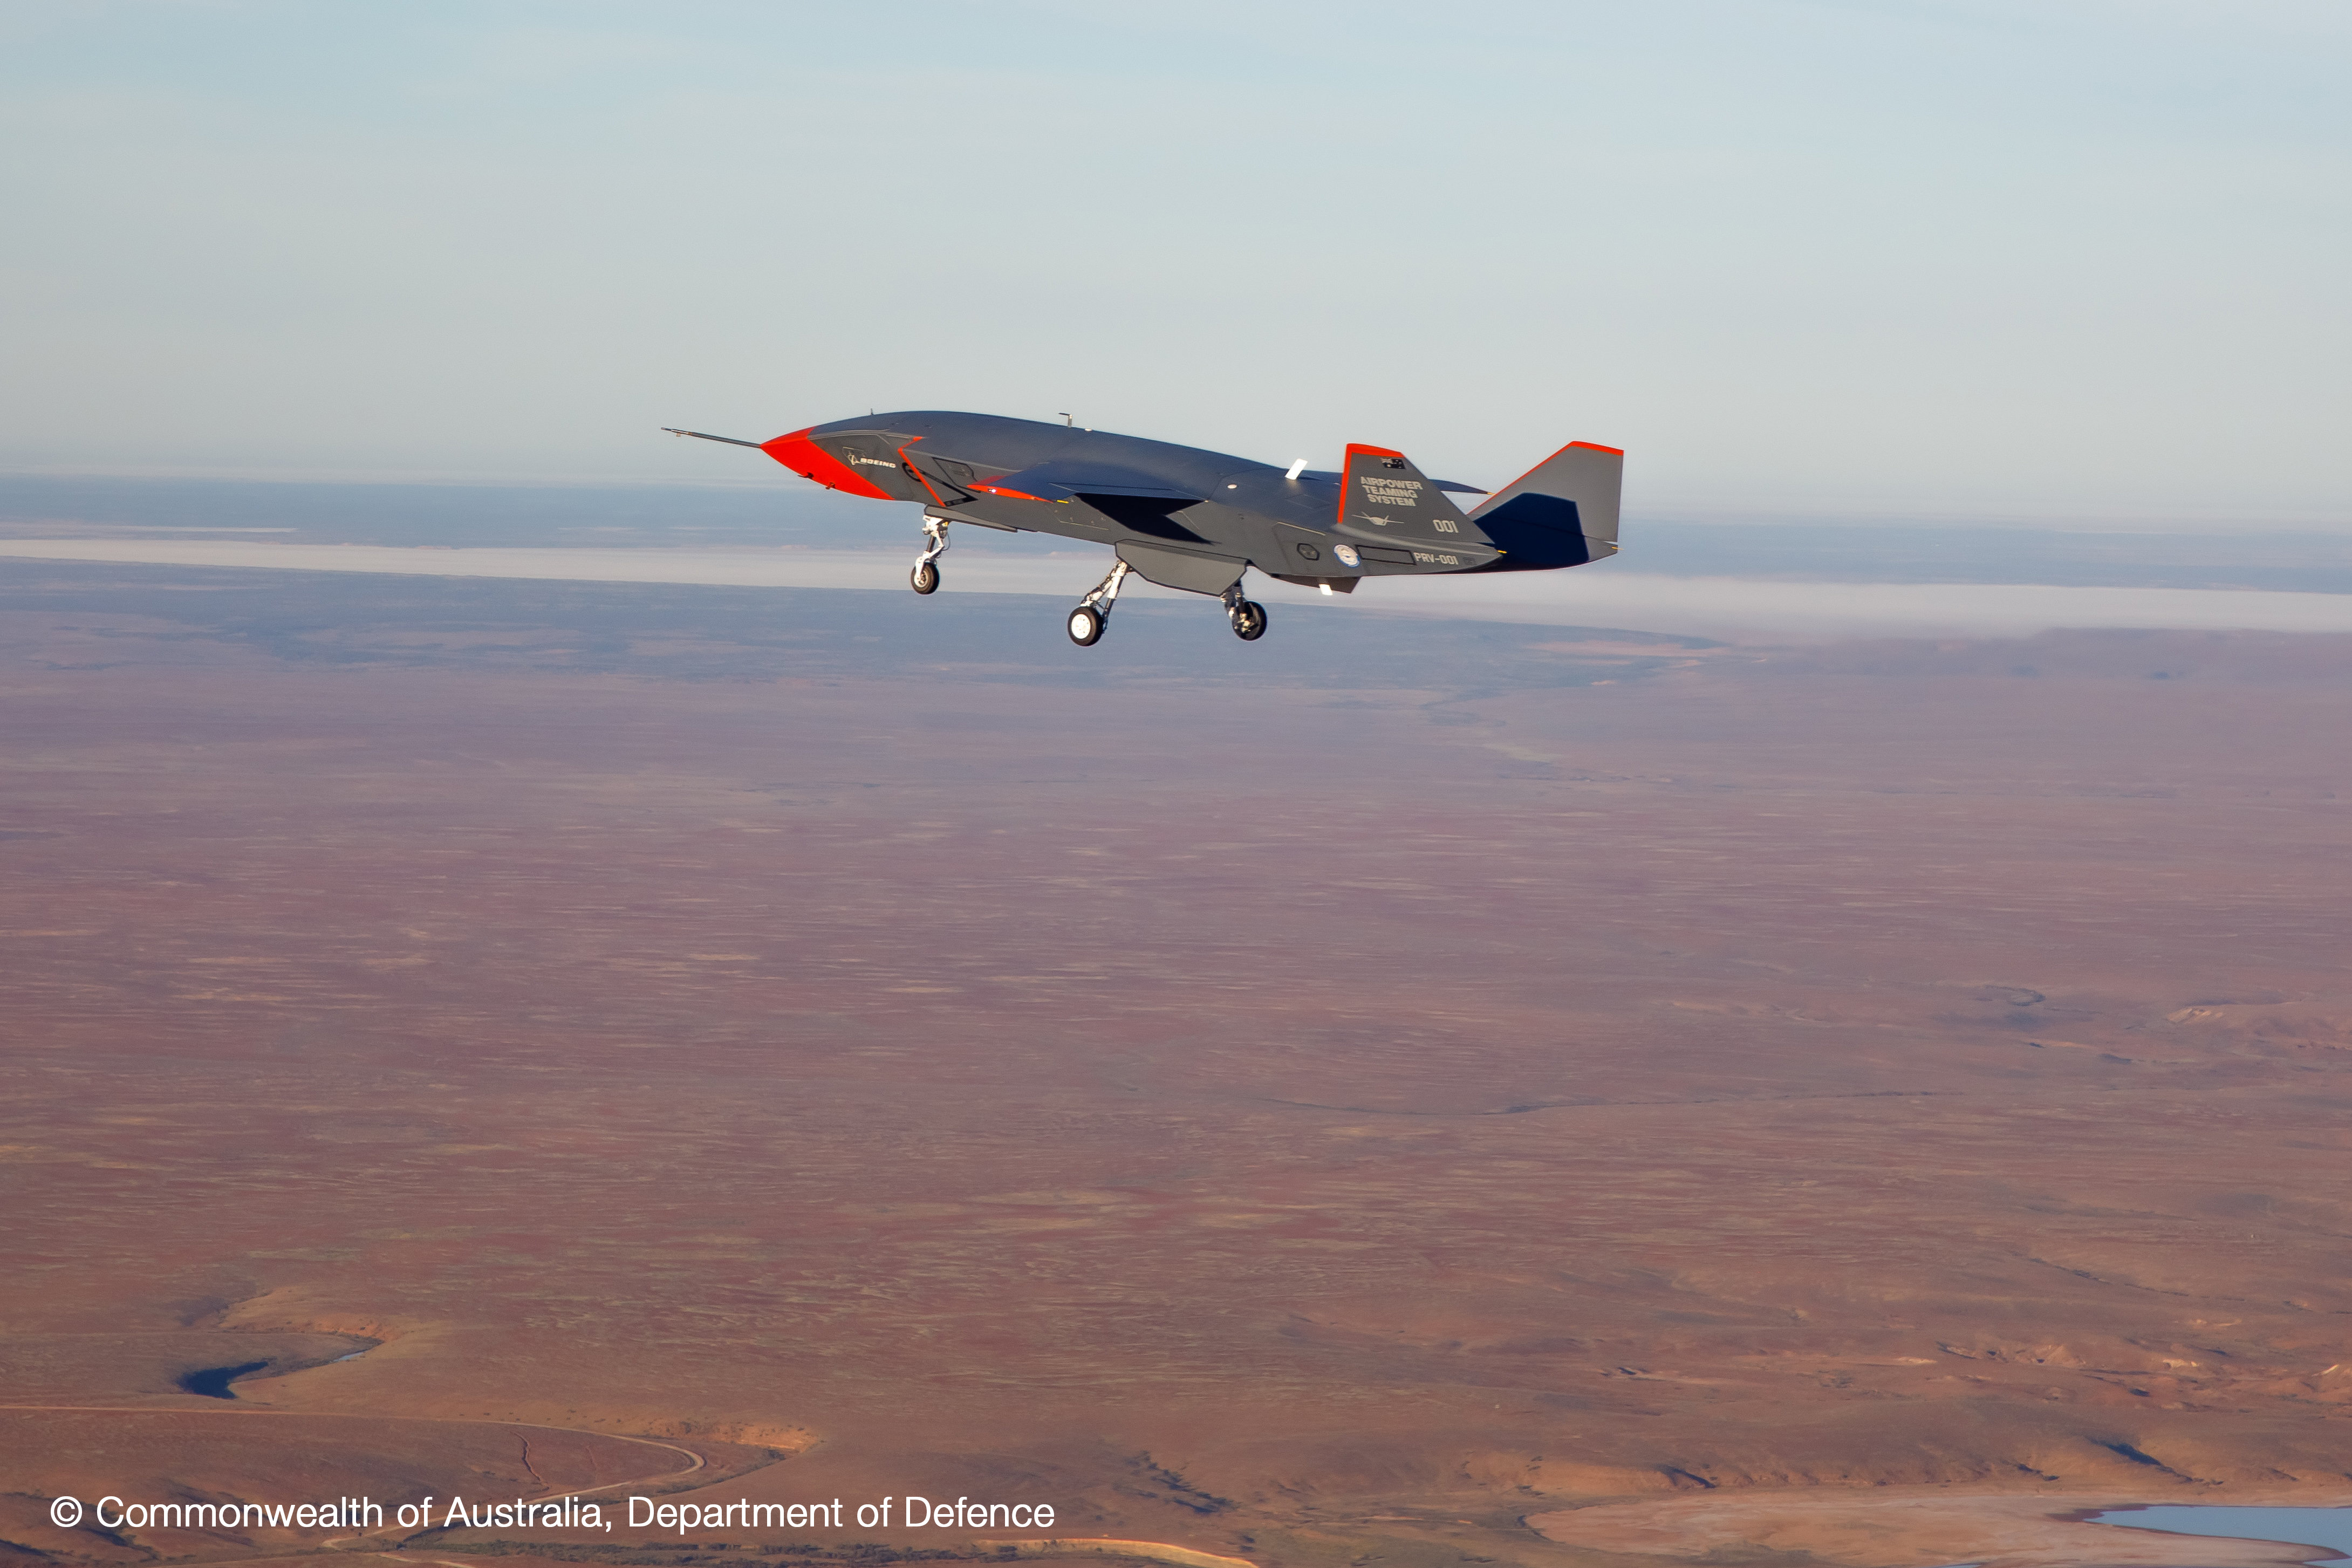 Boeing's Airpower Teaming System conducts its maiden flight on March 1, 2021 over Australia. (Royal Australian Air Force)